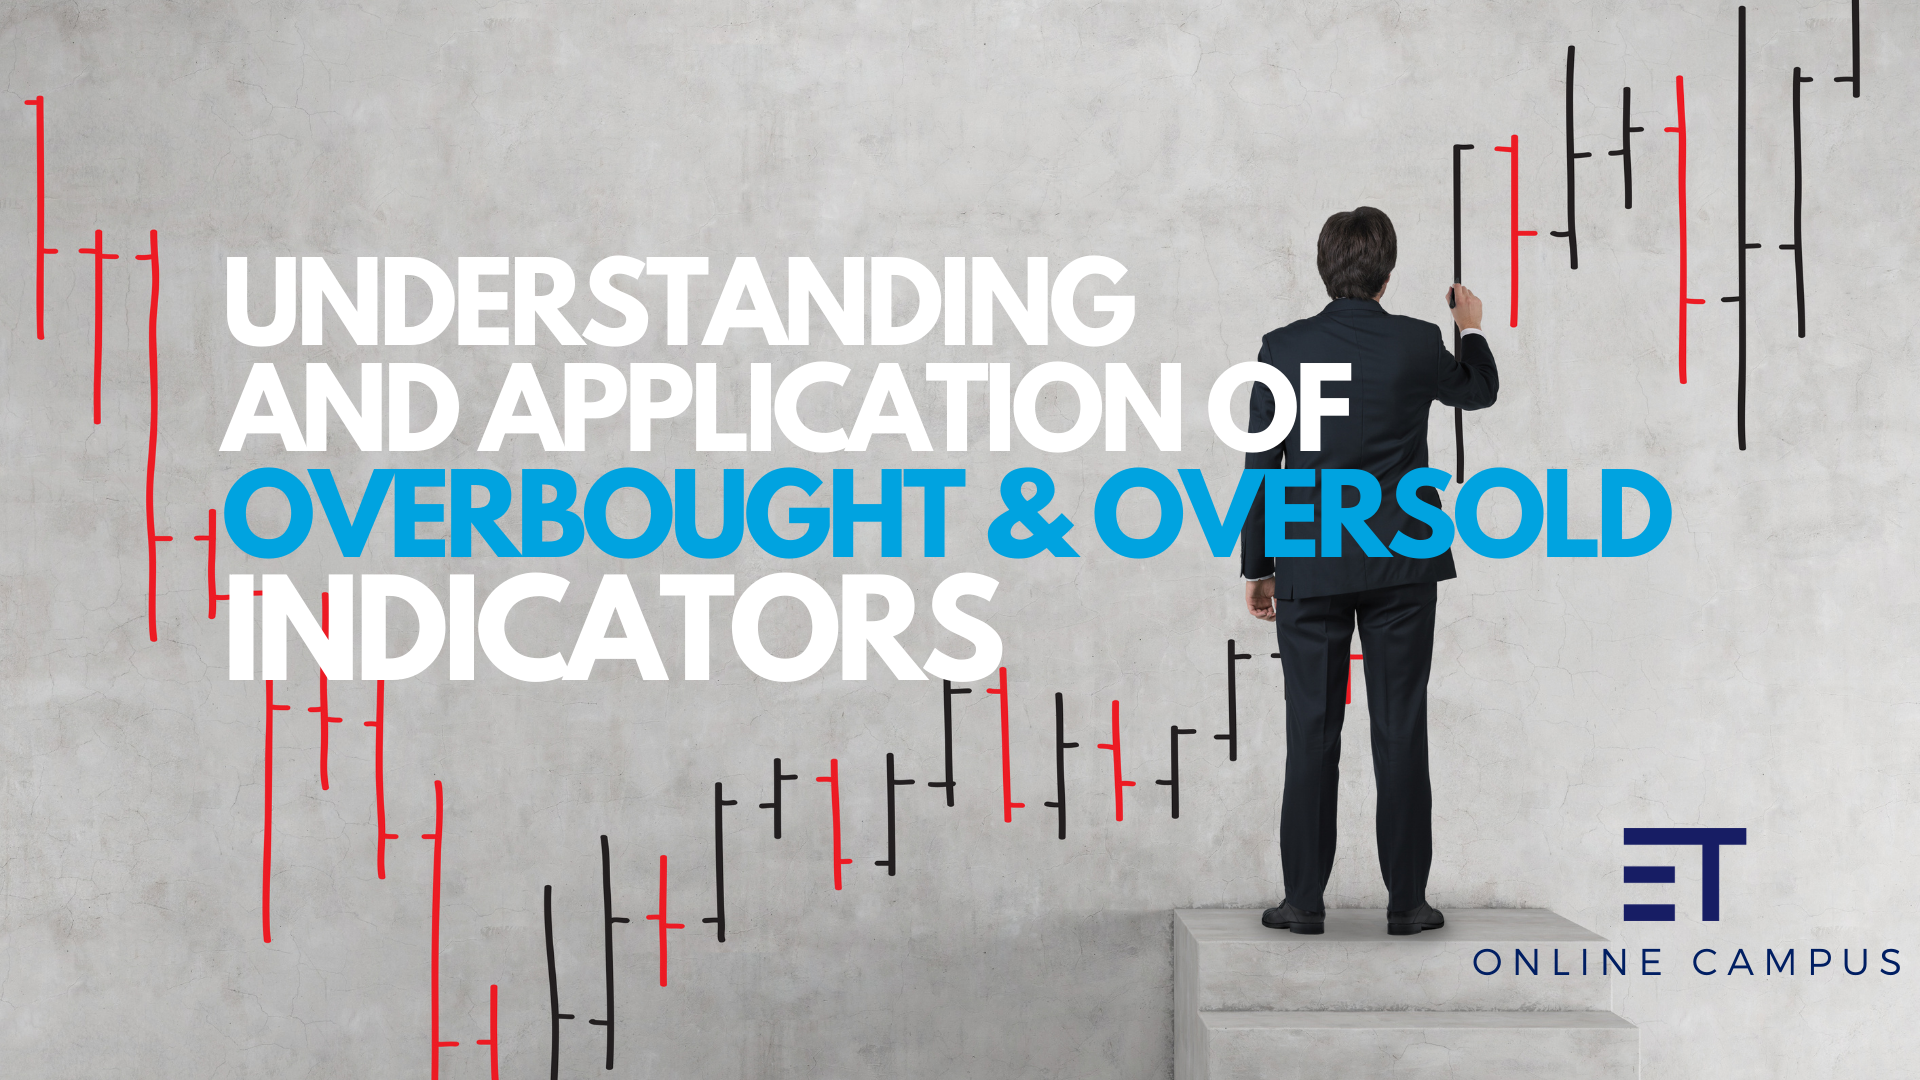 Understanding and Application of Overbought/Oversold Indicators